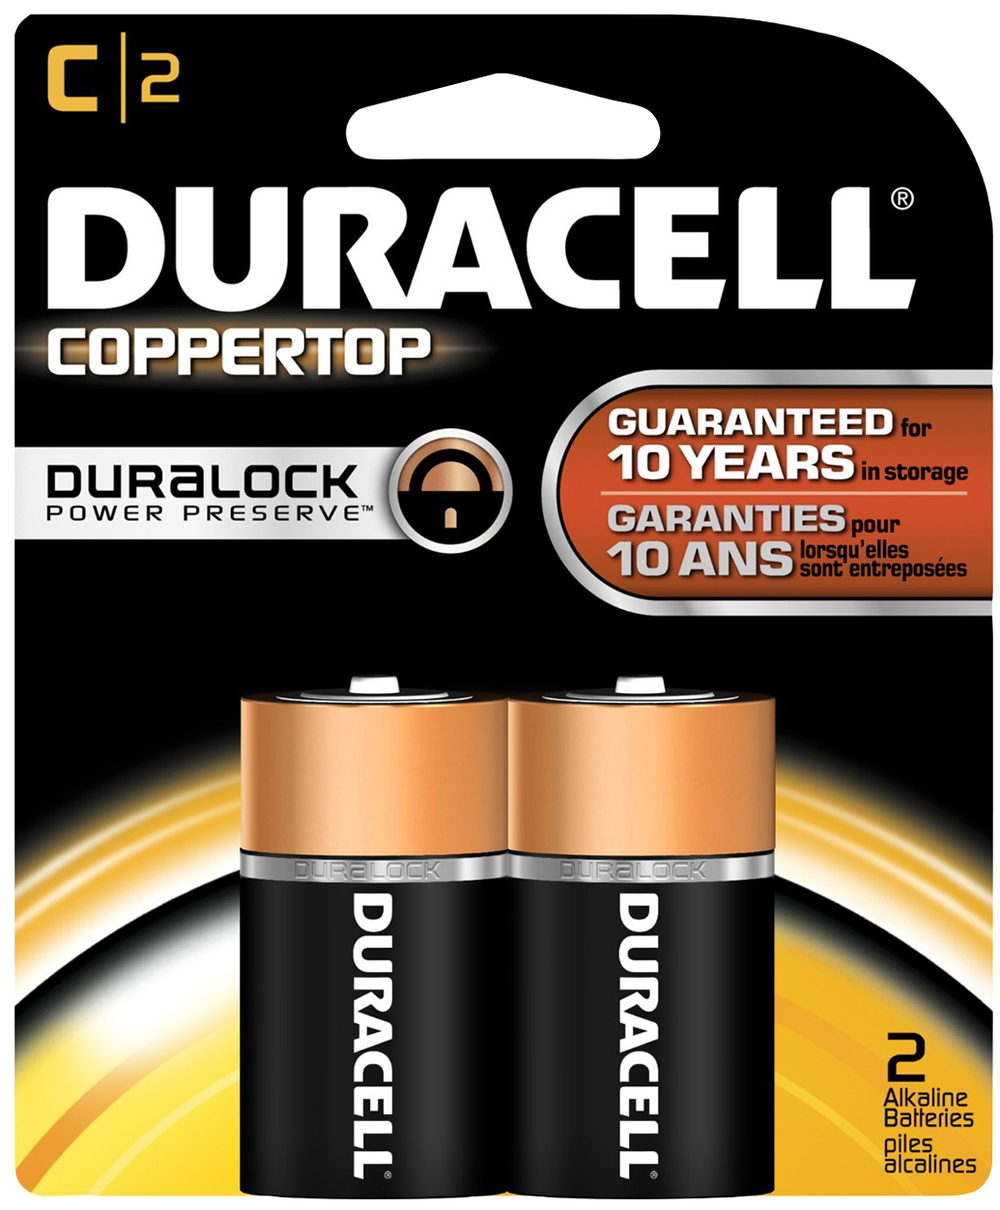 Duracell CopperTop Alkaline Batteries - C 2Pk BP